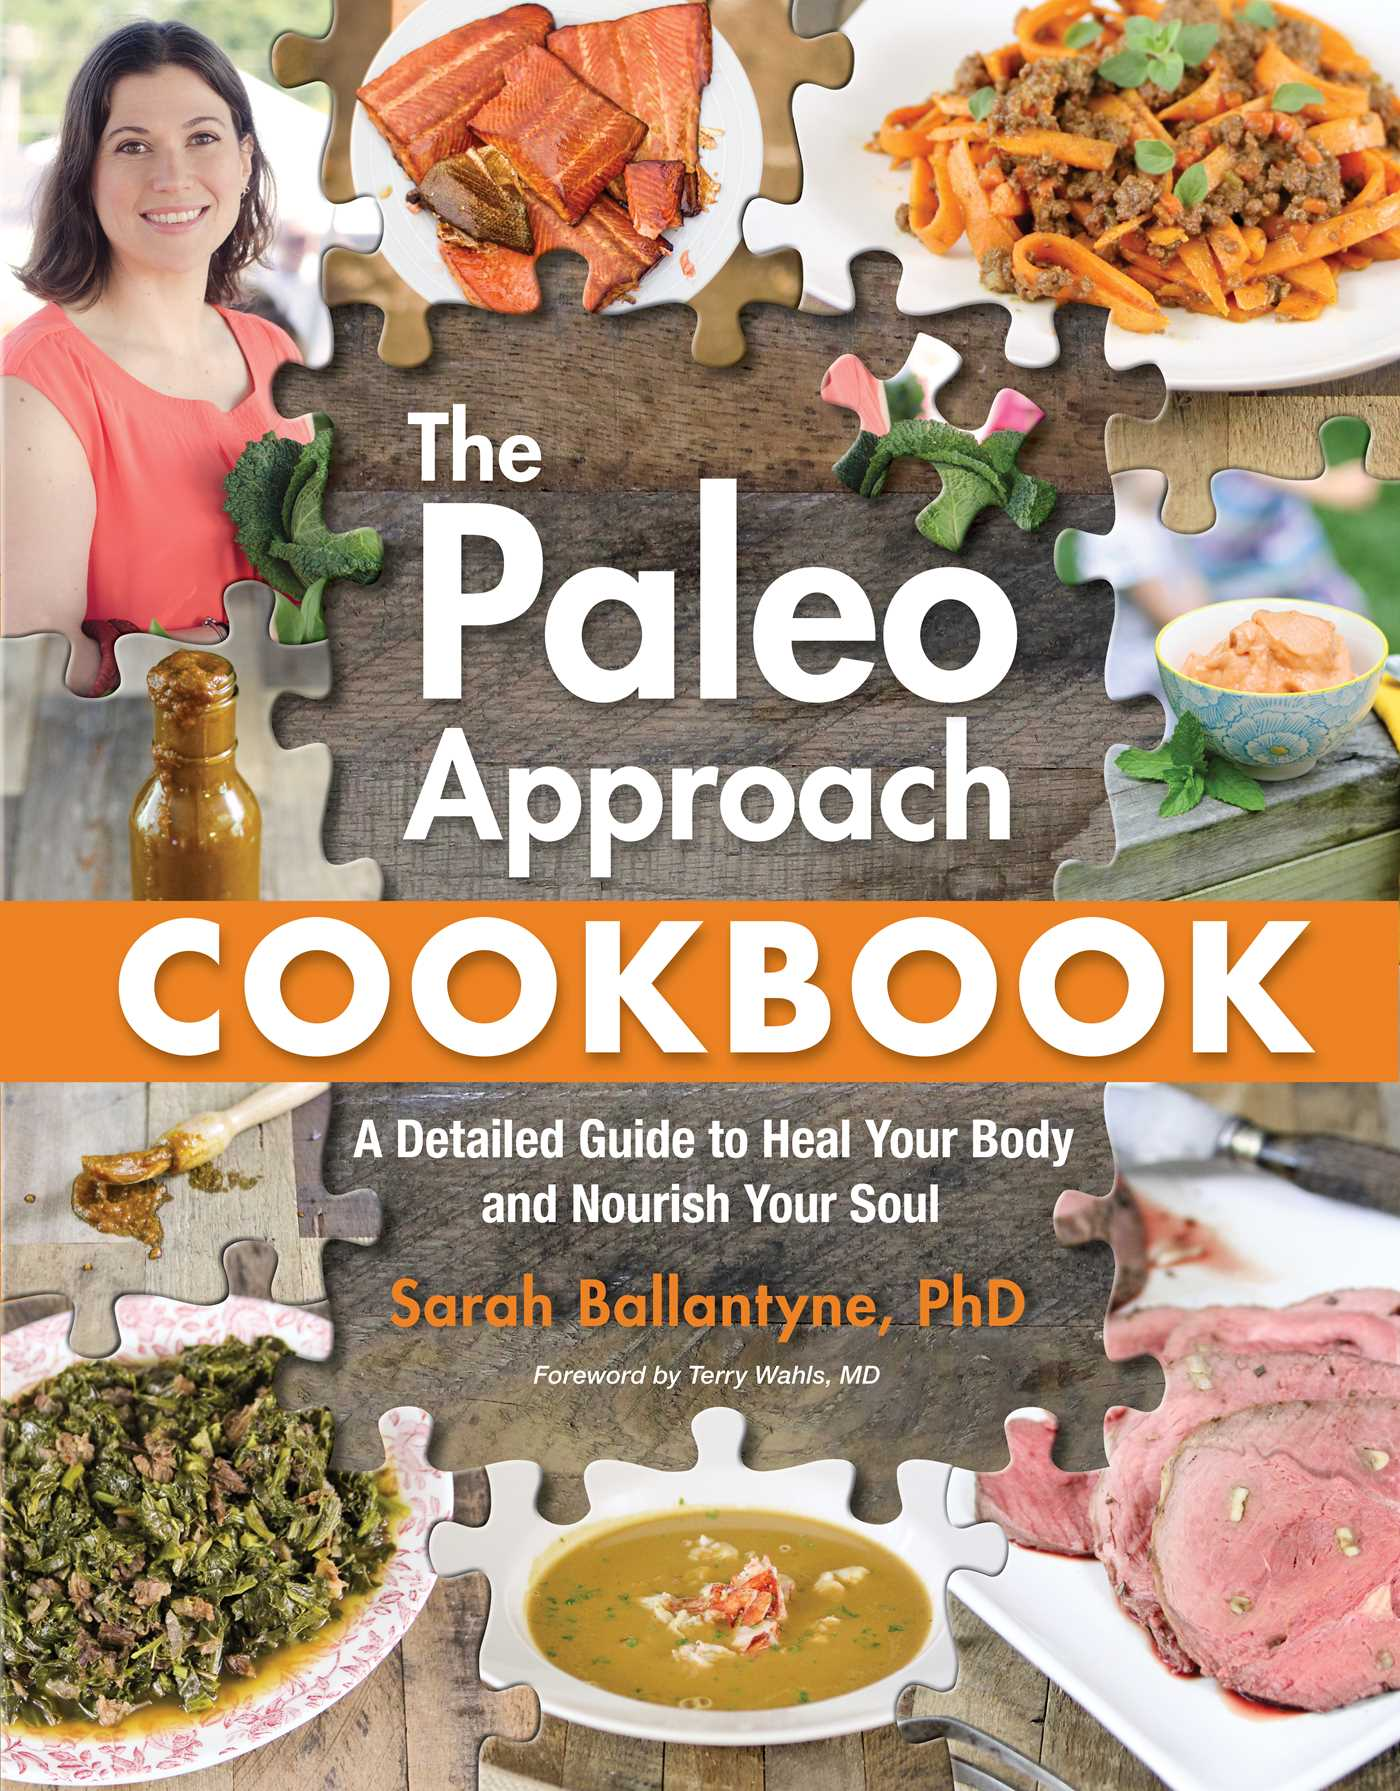 Paleo-approach-cookbook-9781628600087_hr